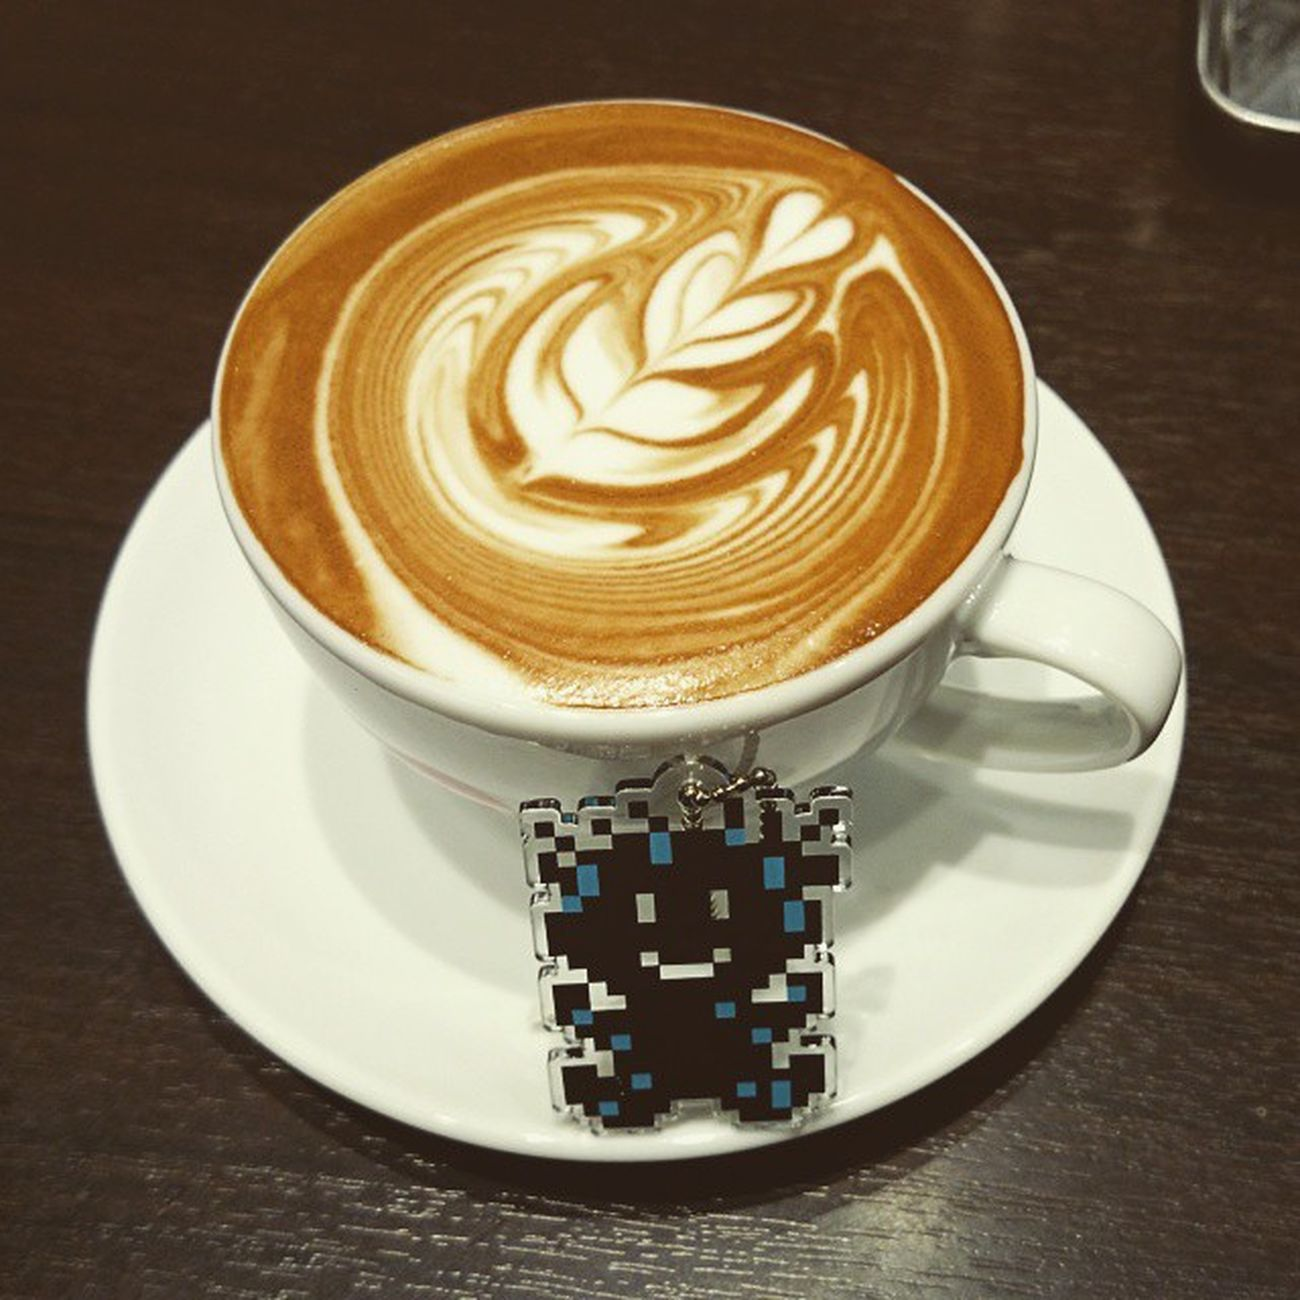 Latteart Pascucci Riverve 失敗 テレポート失敗 Mother